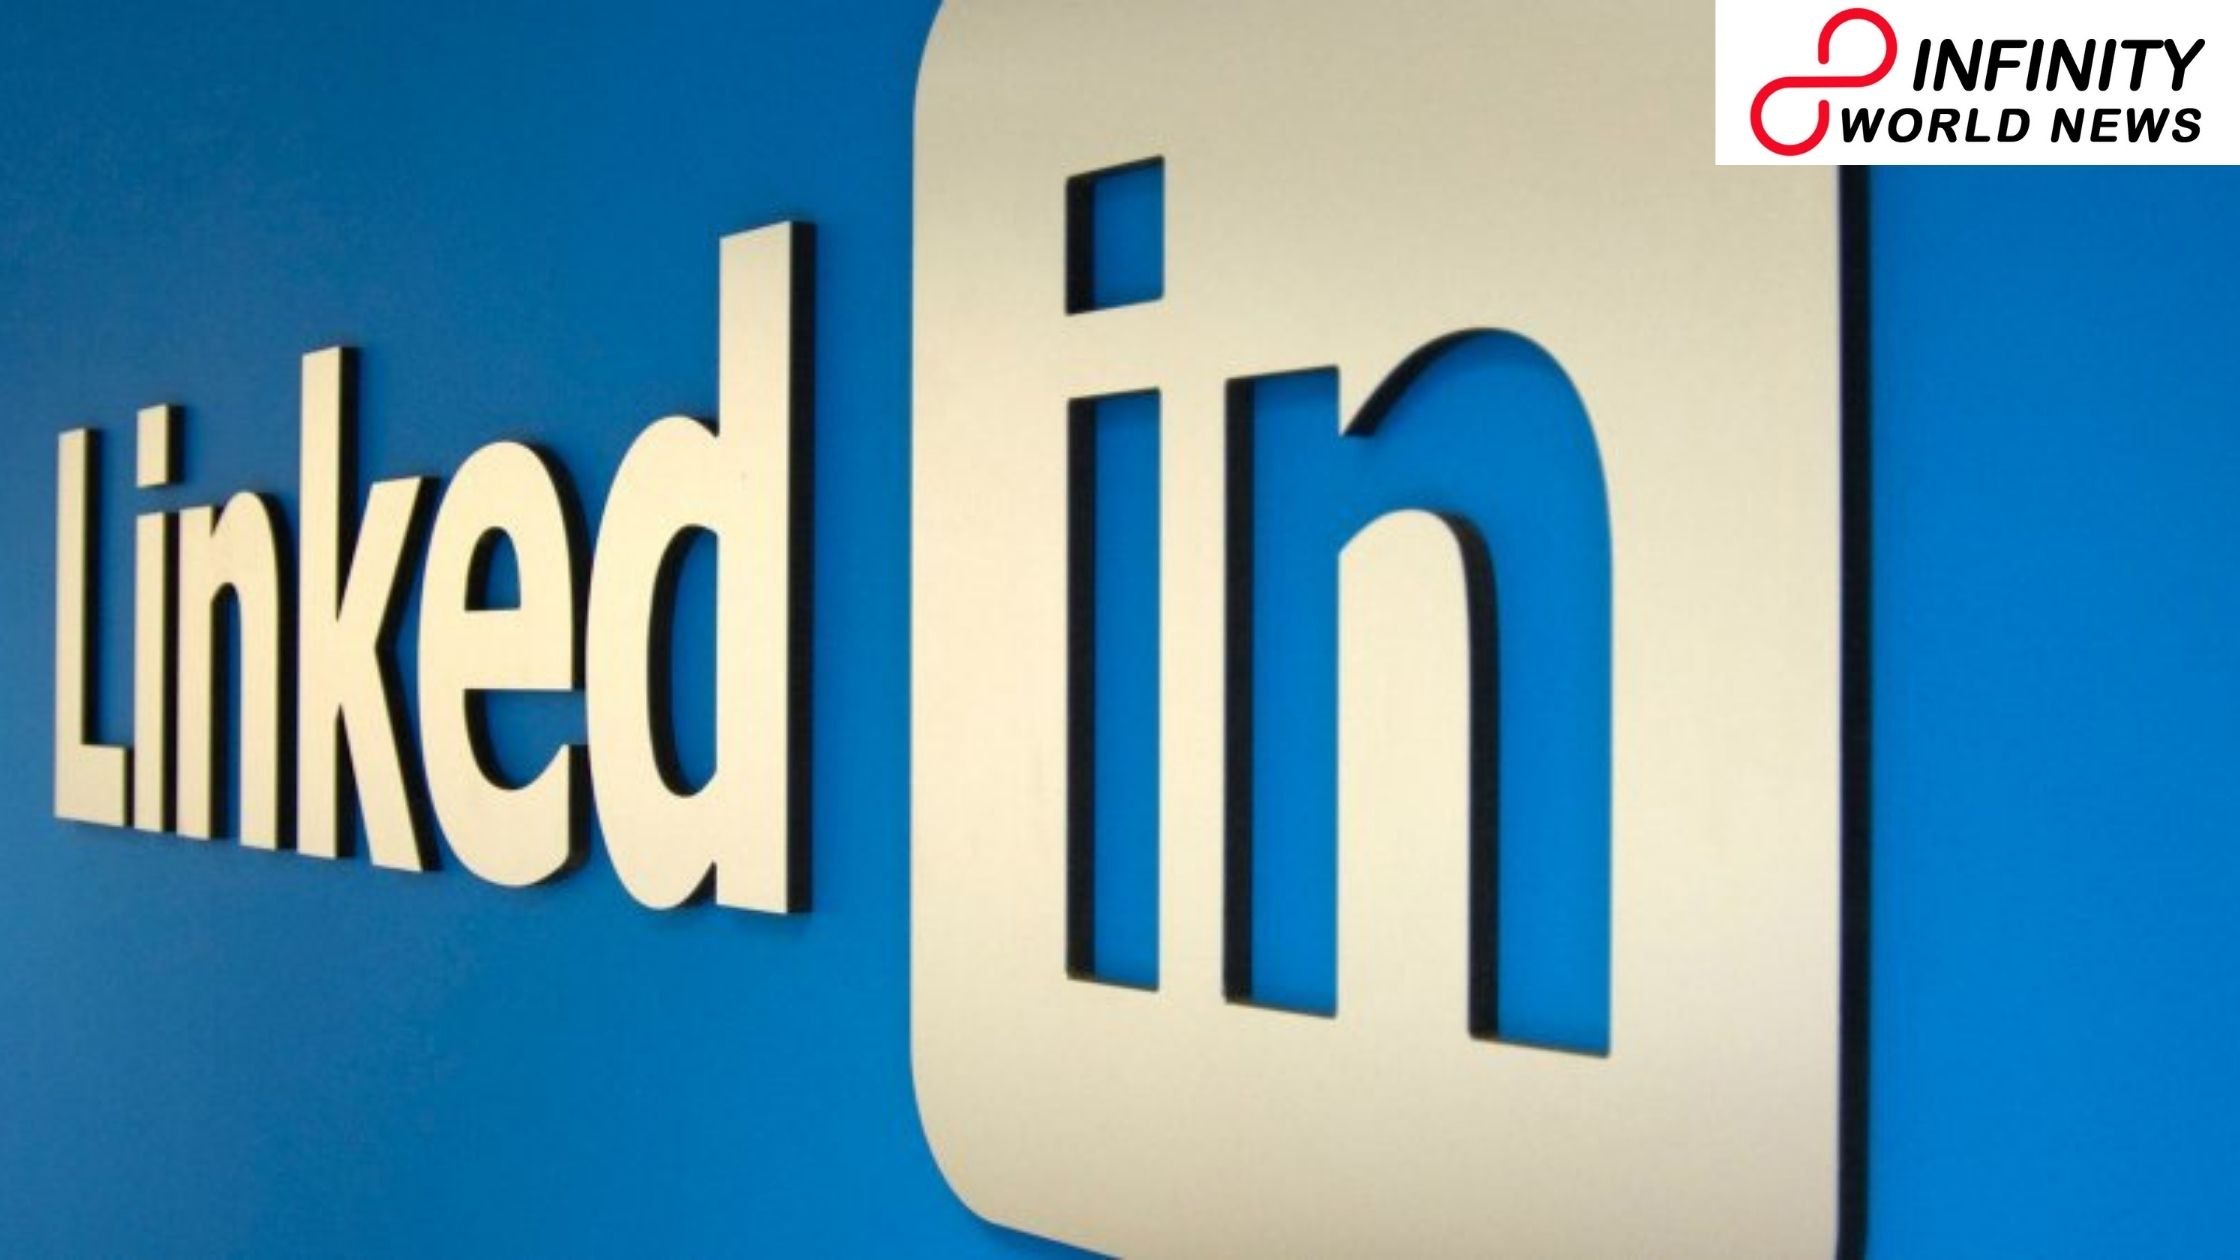 LinkedIn dispatches new instruments, assets to enable jobless experts to return to work